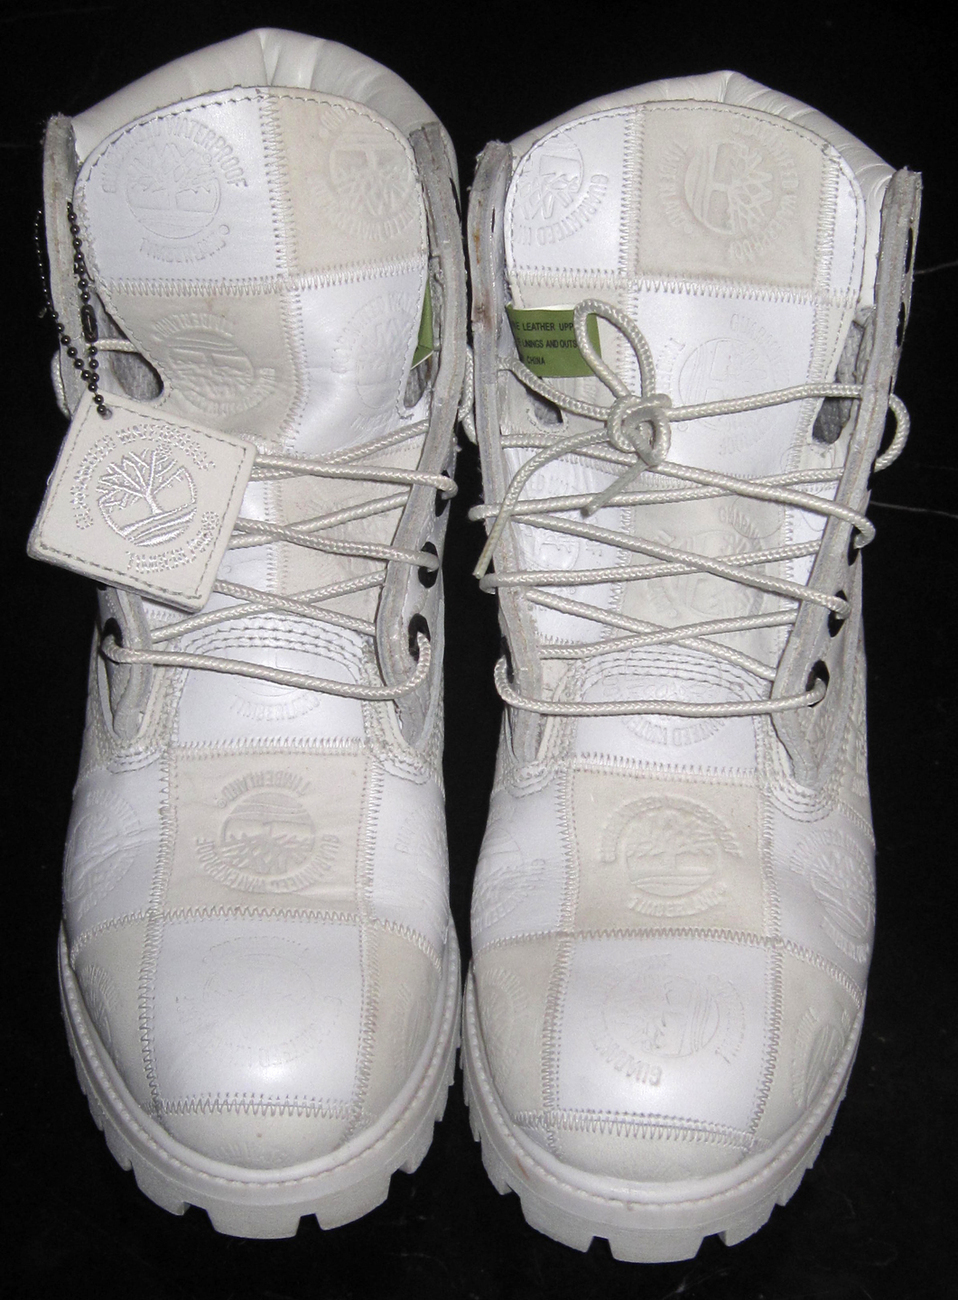 mens timberland shoes white waterproof boots size 7 1 2 m